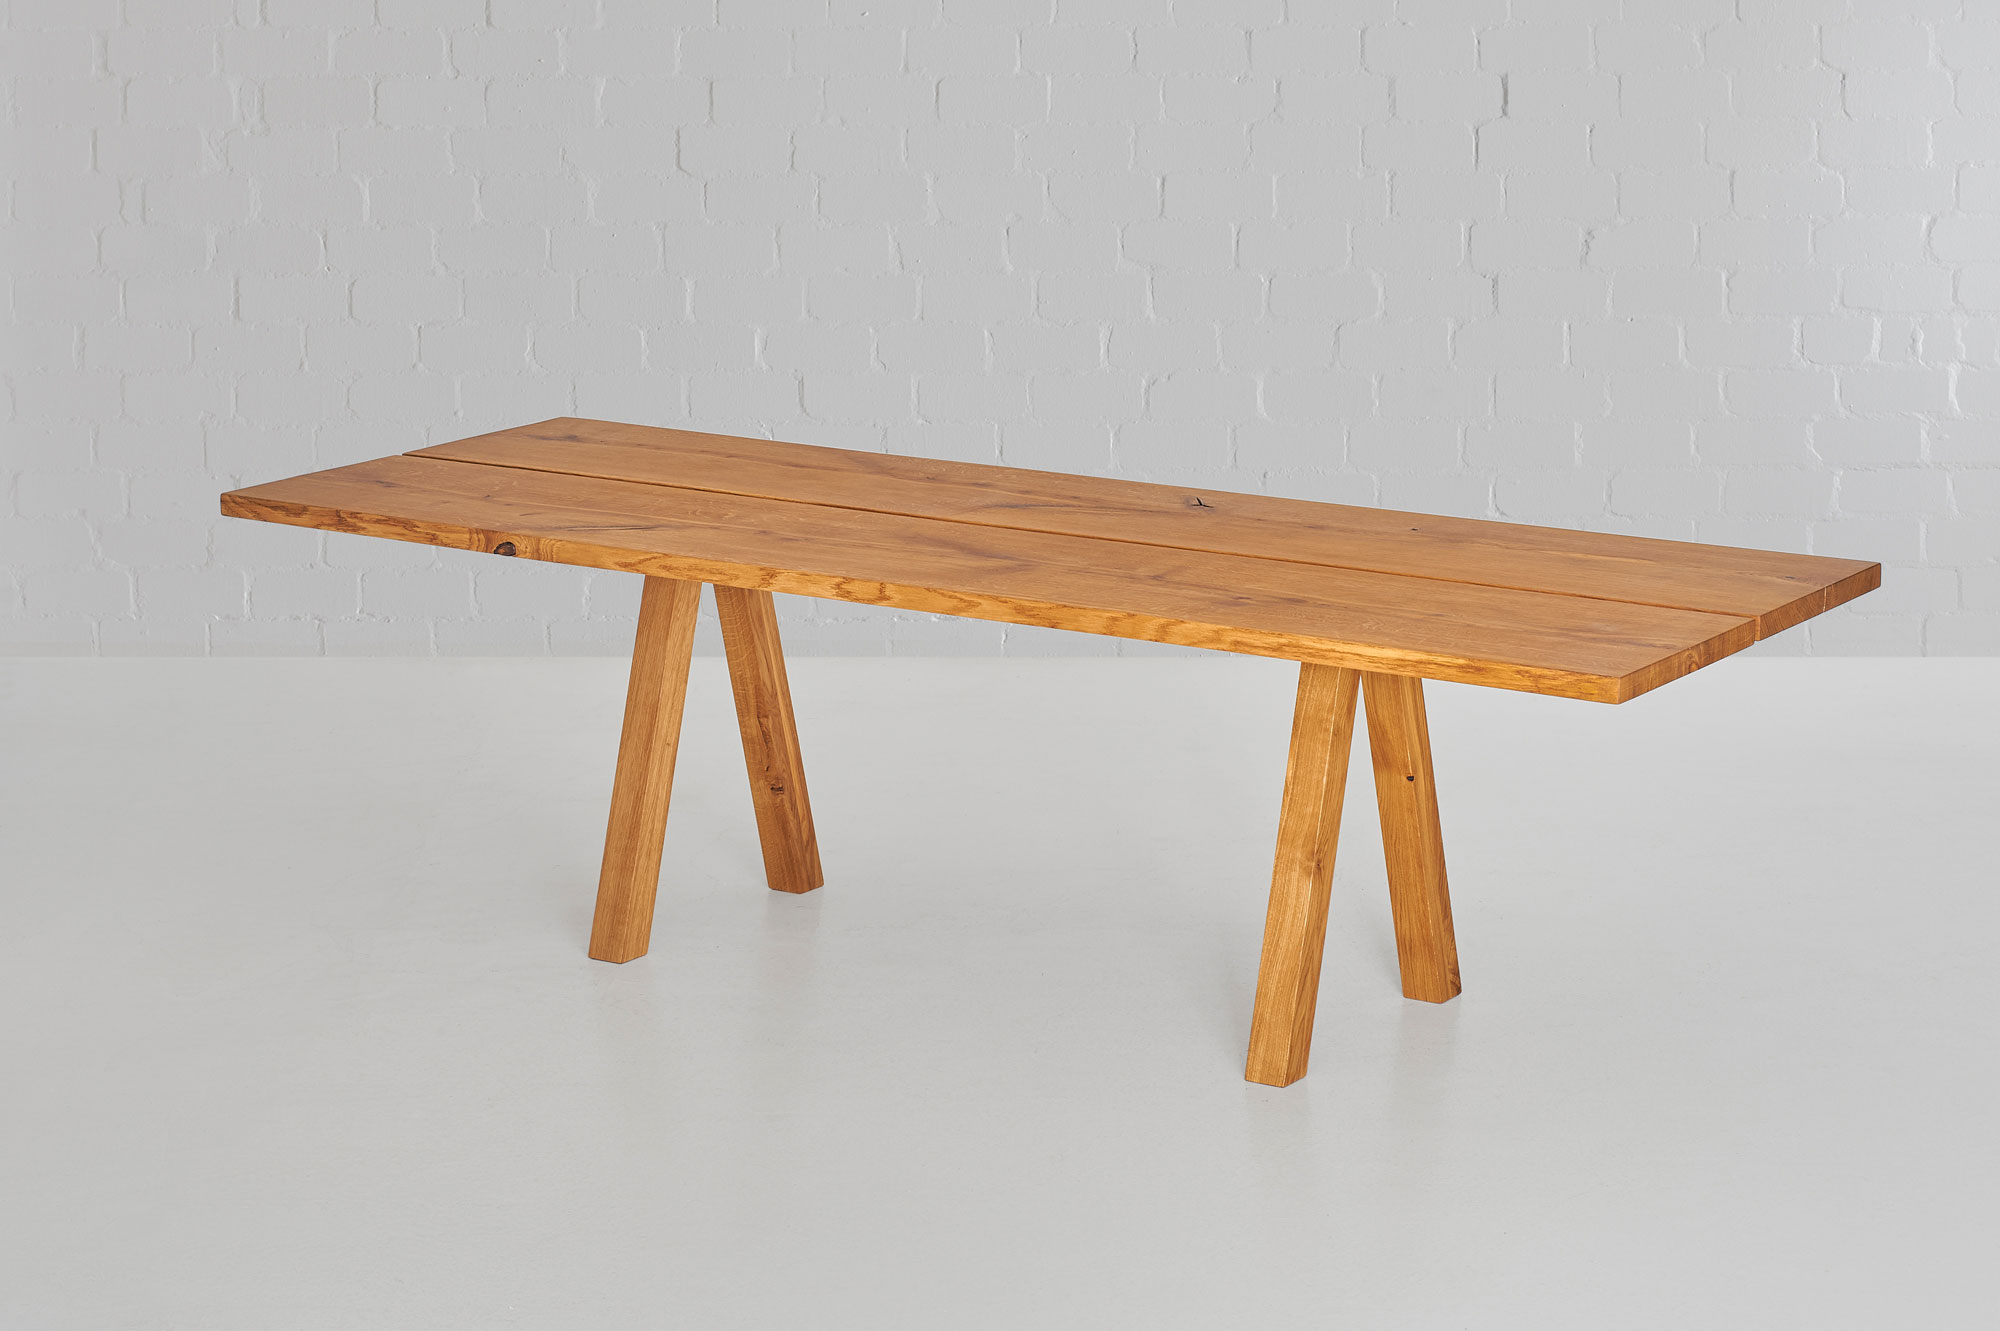 Designer Tree Trunk Table PAPILIO 0471 custom made in solid wood by vitamin design